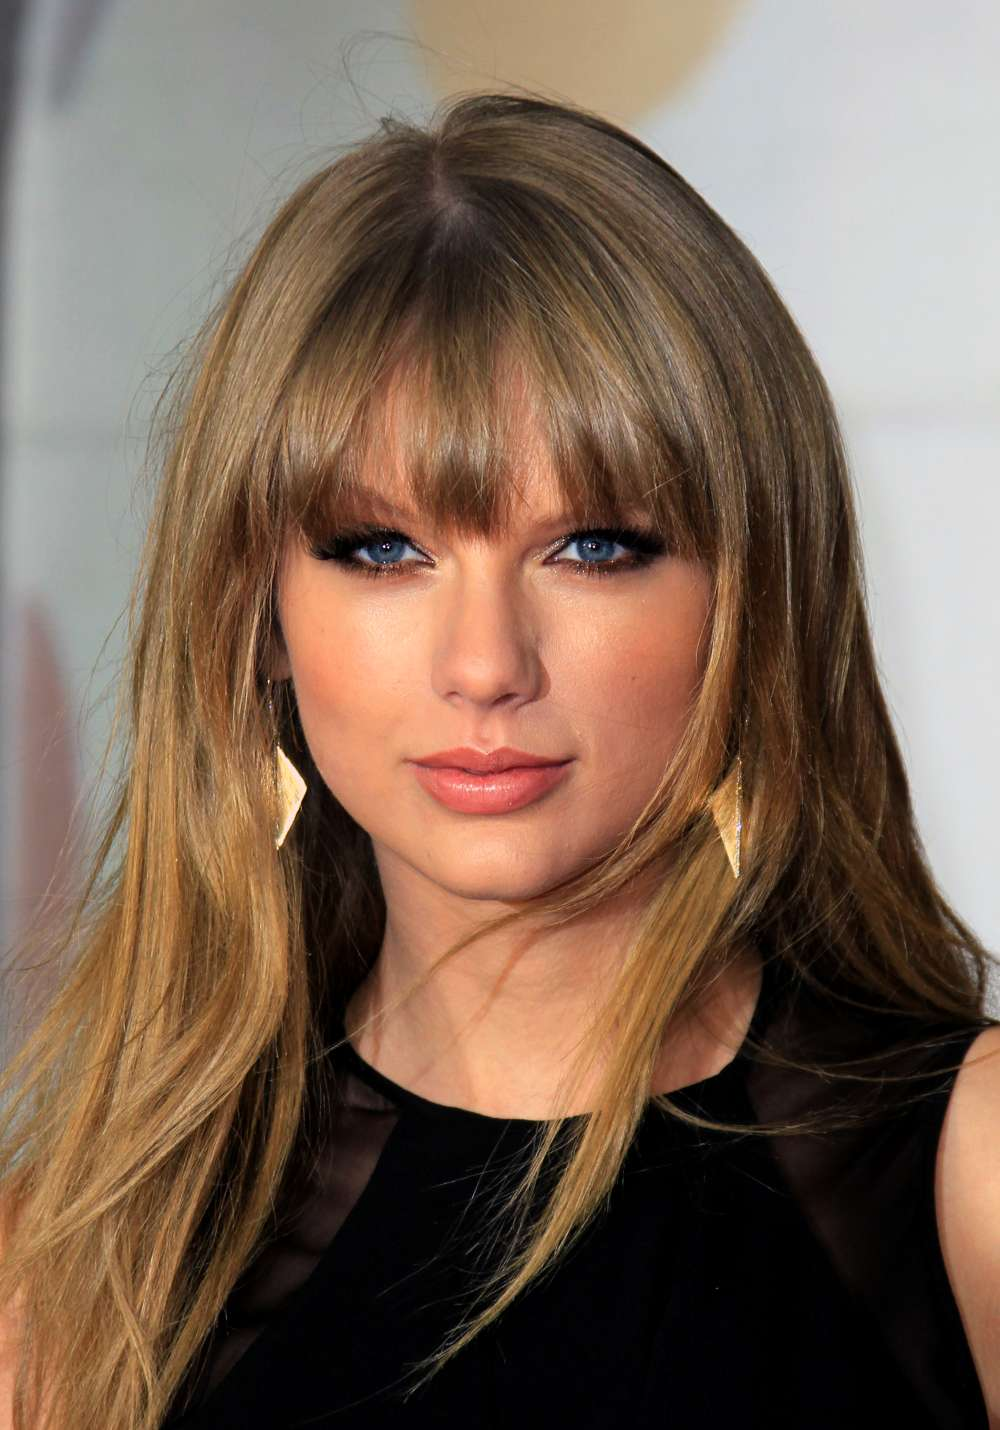 New Beautiful 25 Images Of The Famous Singer Taylor Swift 2013